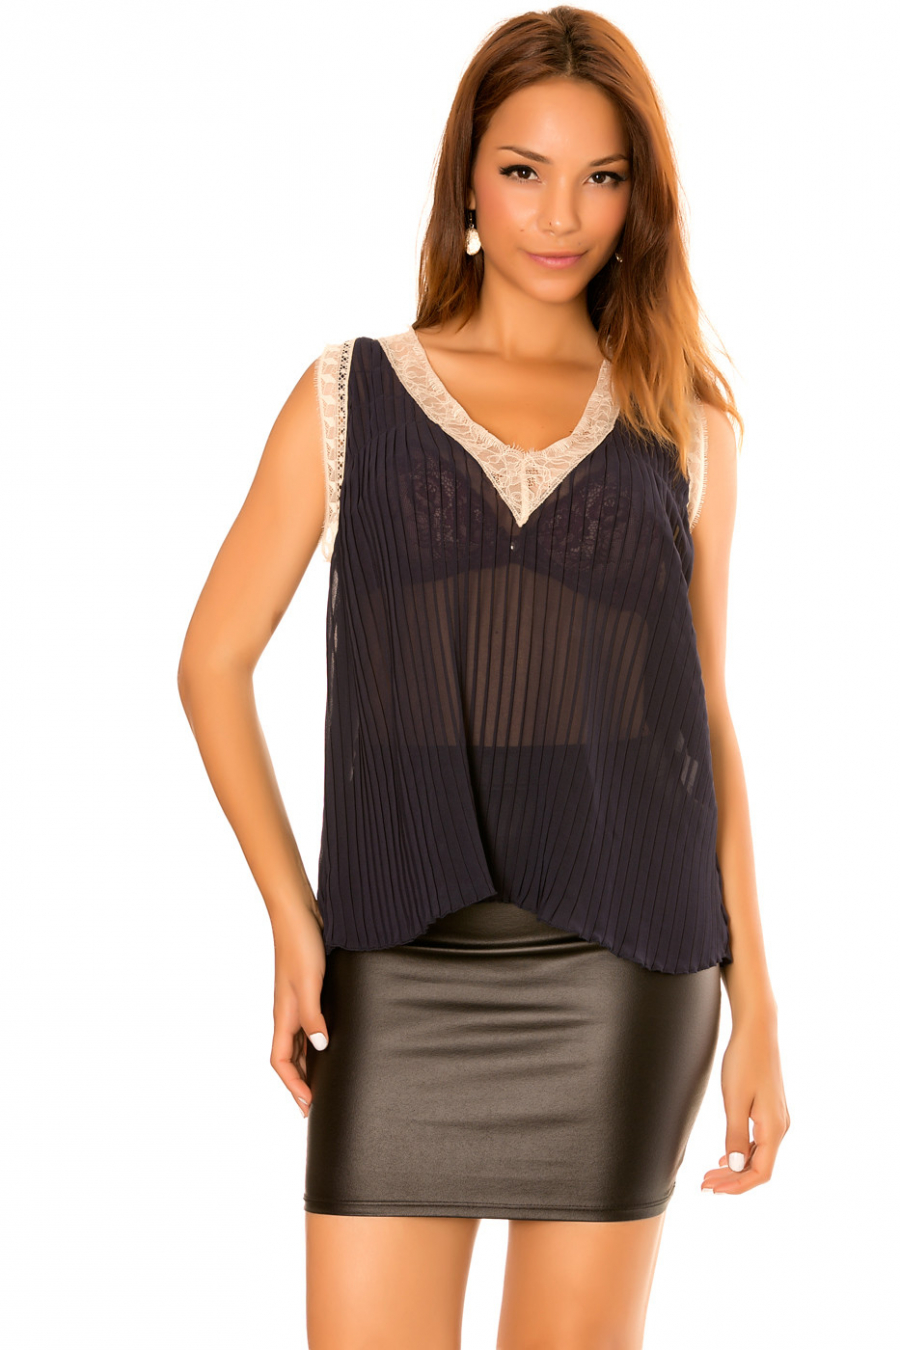 Asymmetric navy top, pleated material and lace V-neck.